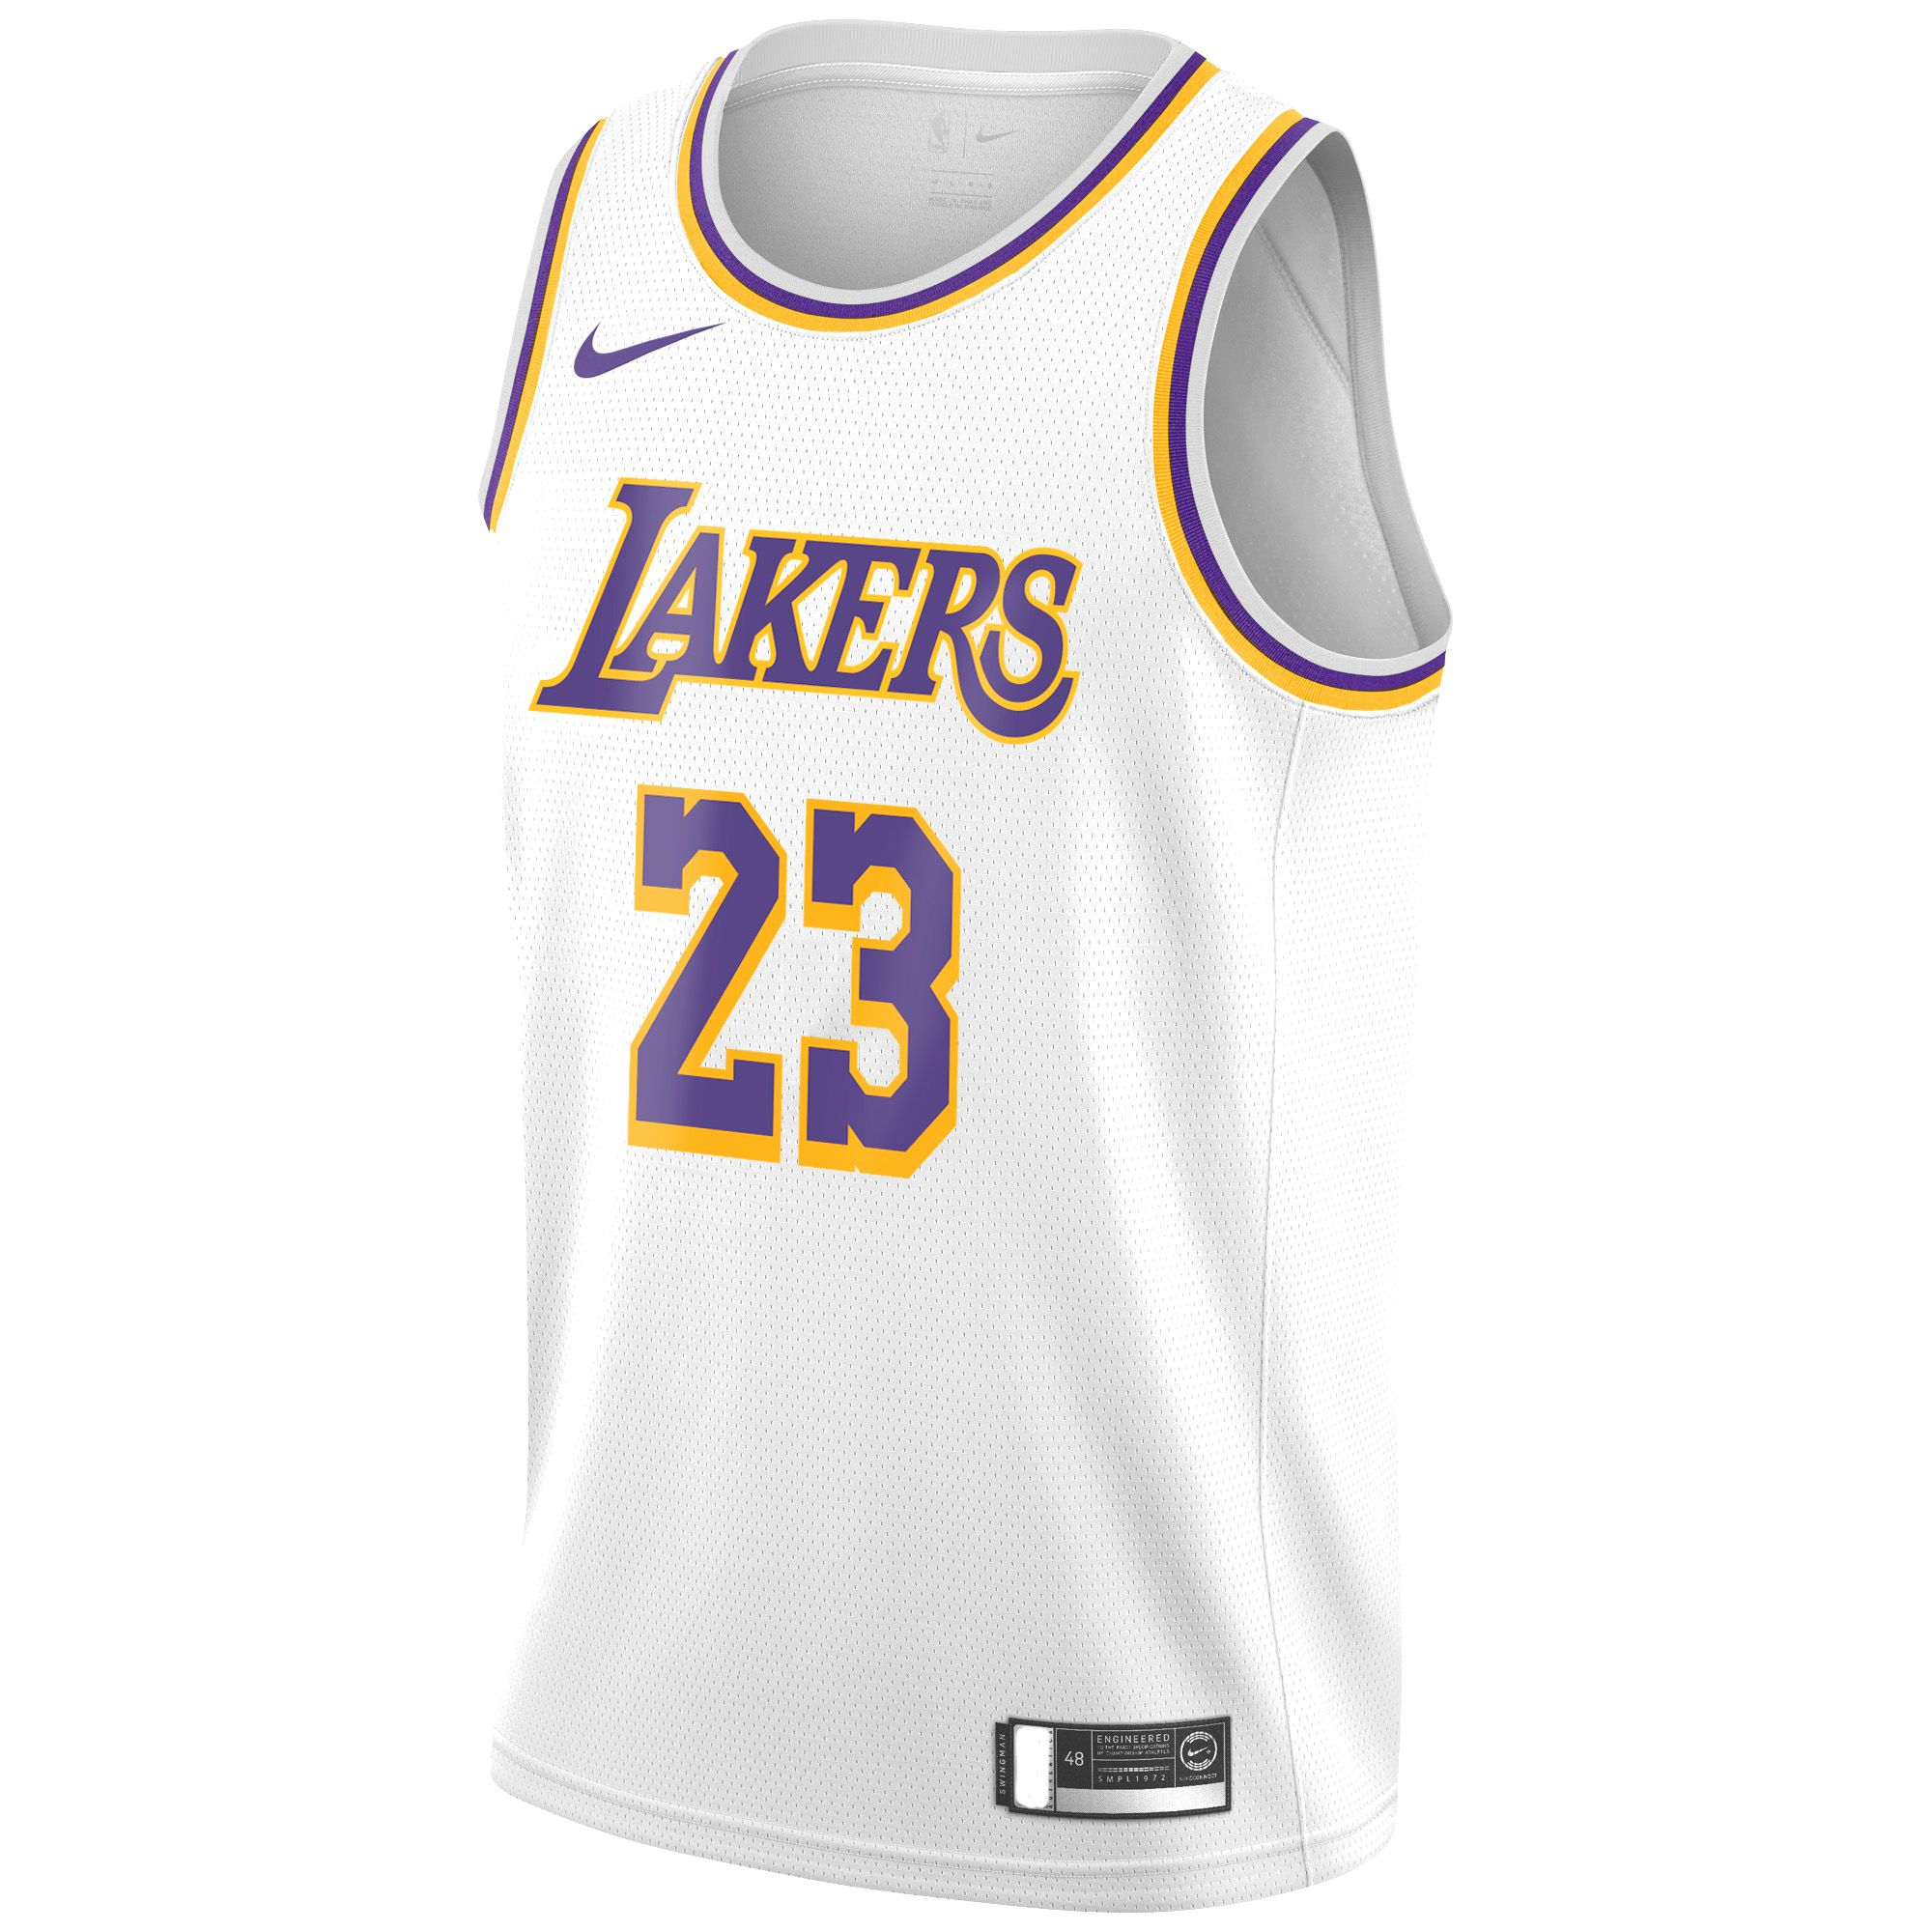 Nike Lebron James Lakers Jersey in 2020 La lakers jersey